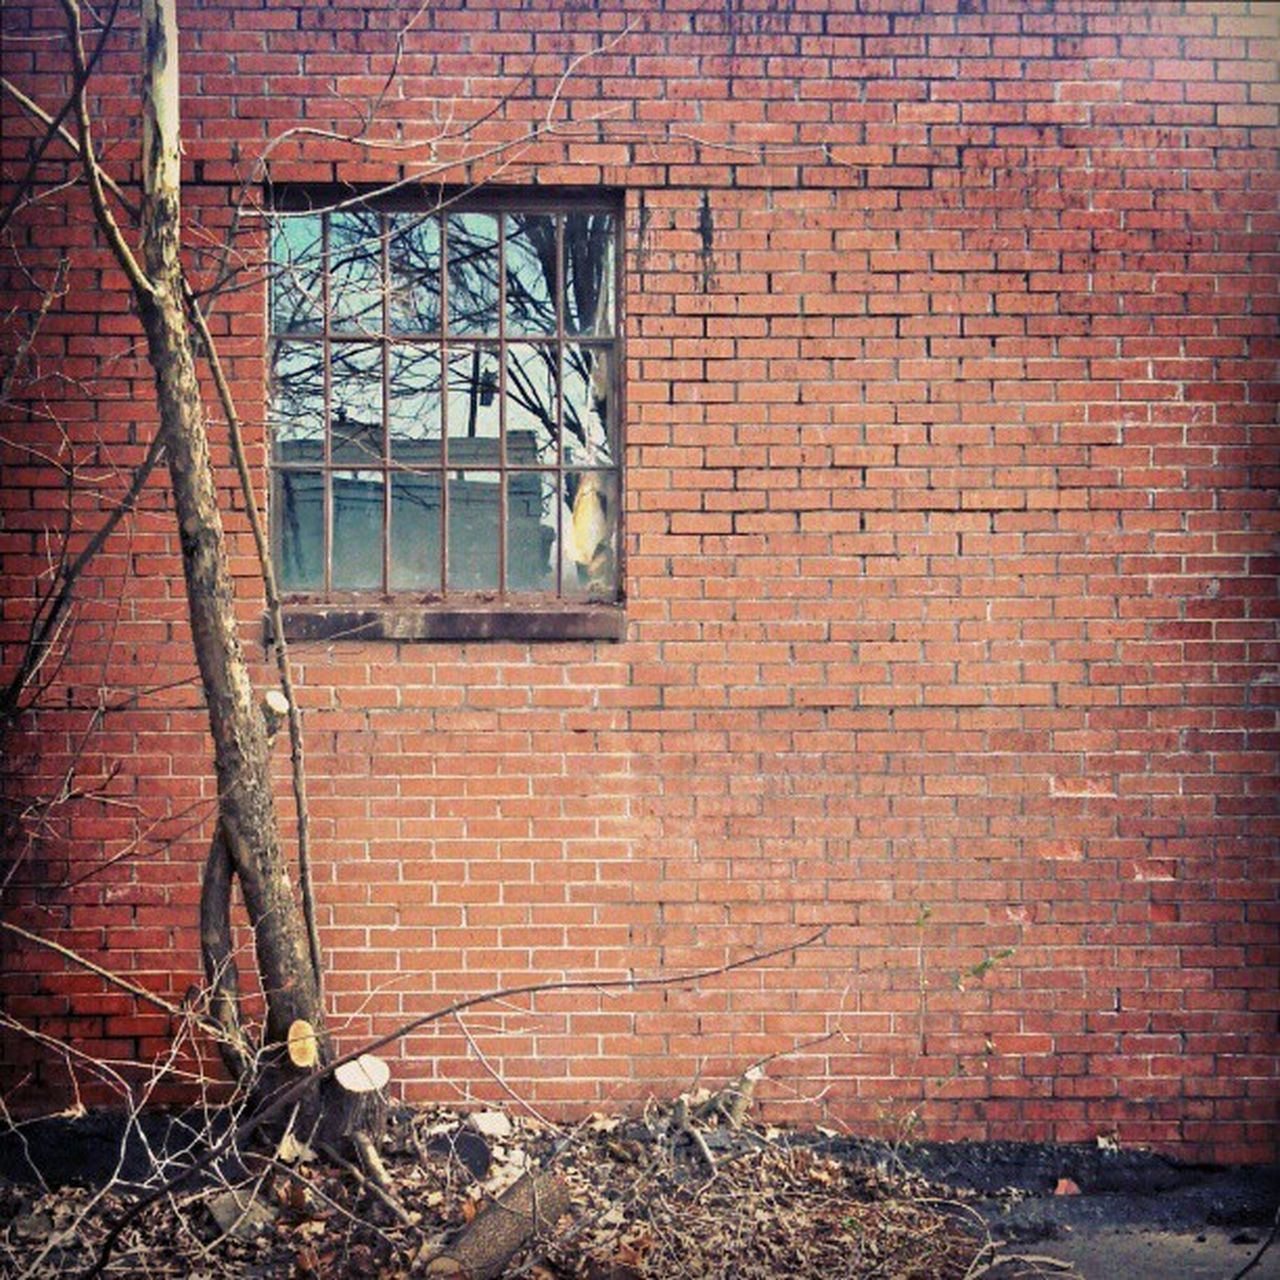 architecture, built structure, brick wall, building exterior, abandoned, weathered, no people, day, damaged, window, outdoors, run-down, plant, bad condition, ivy, bare tree, rotting, desolate